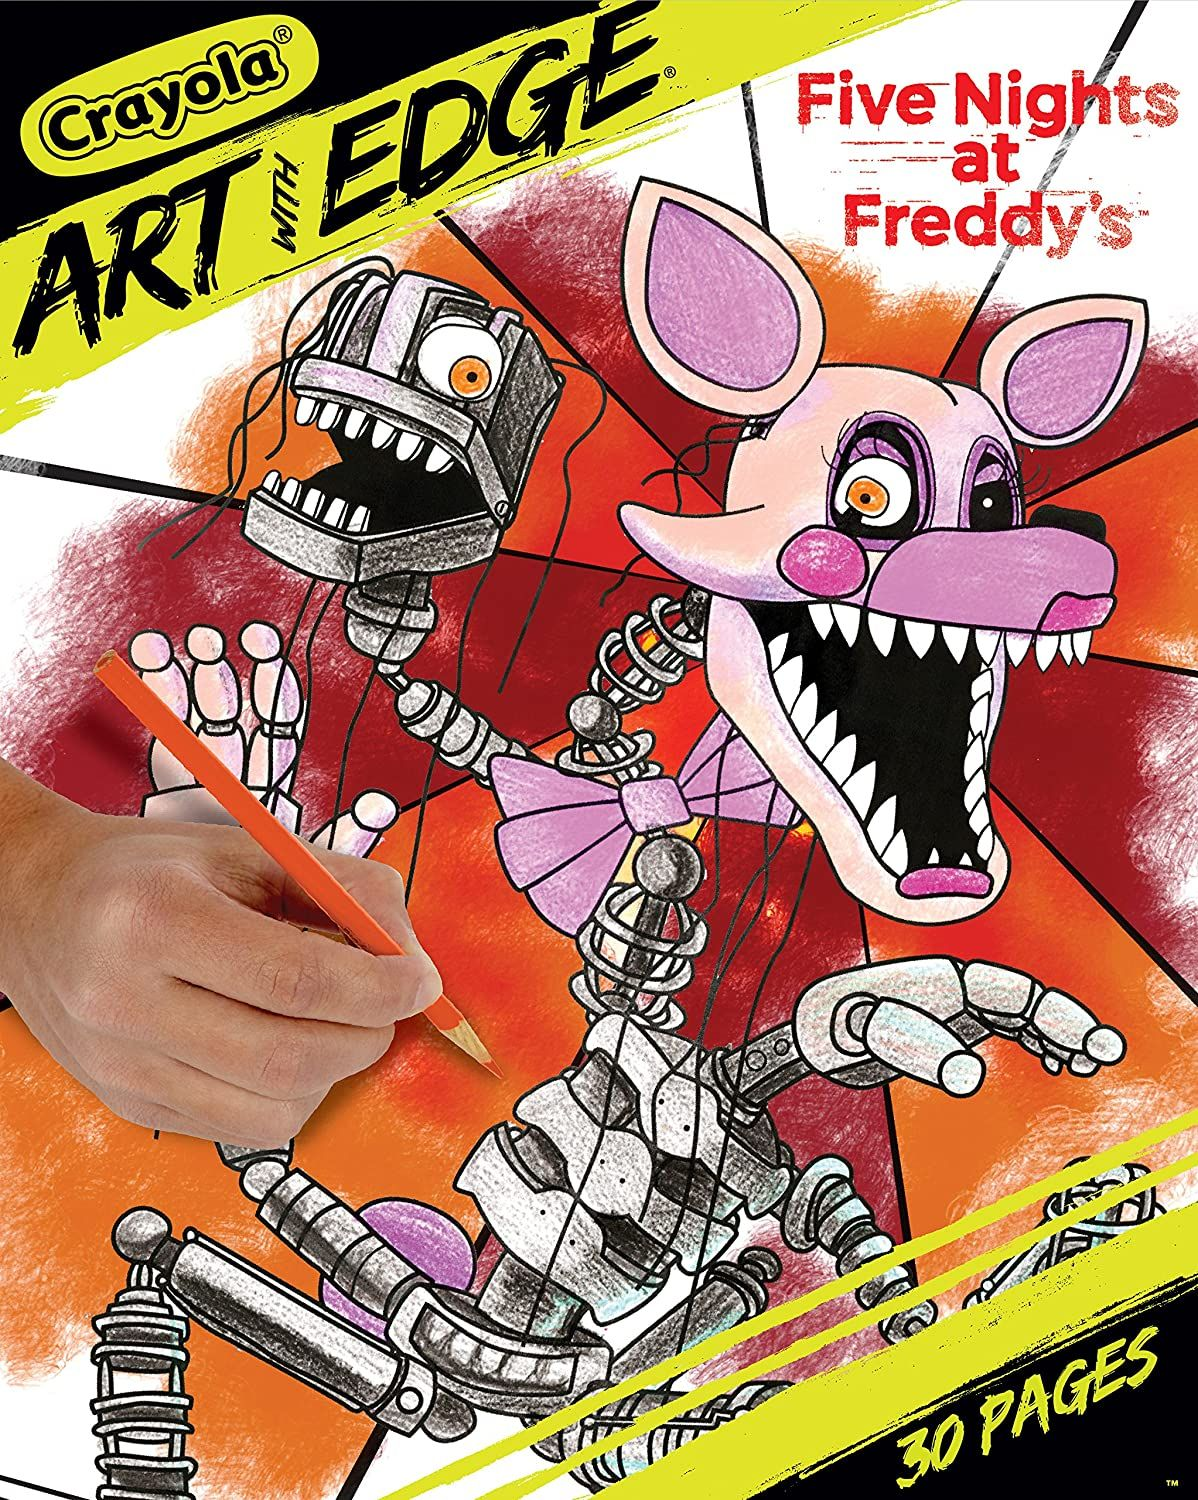 Springtrap Fnaf 6 Coloring Pages In 2020 Coloring Books Crayola Coloring Pages Coloring Pages